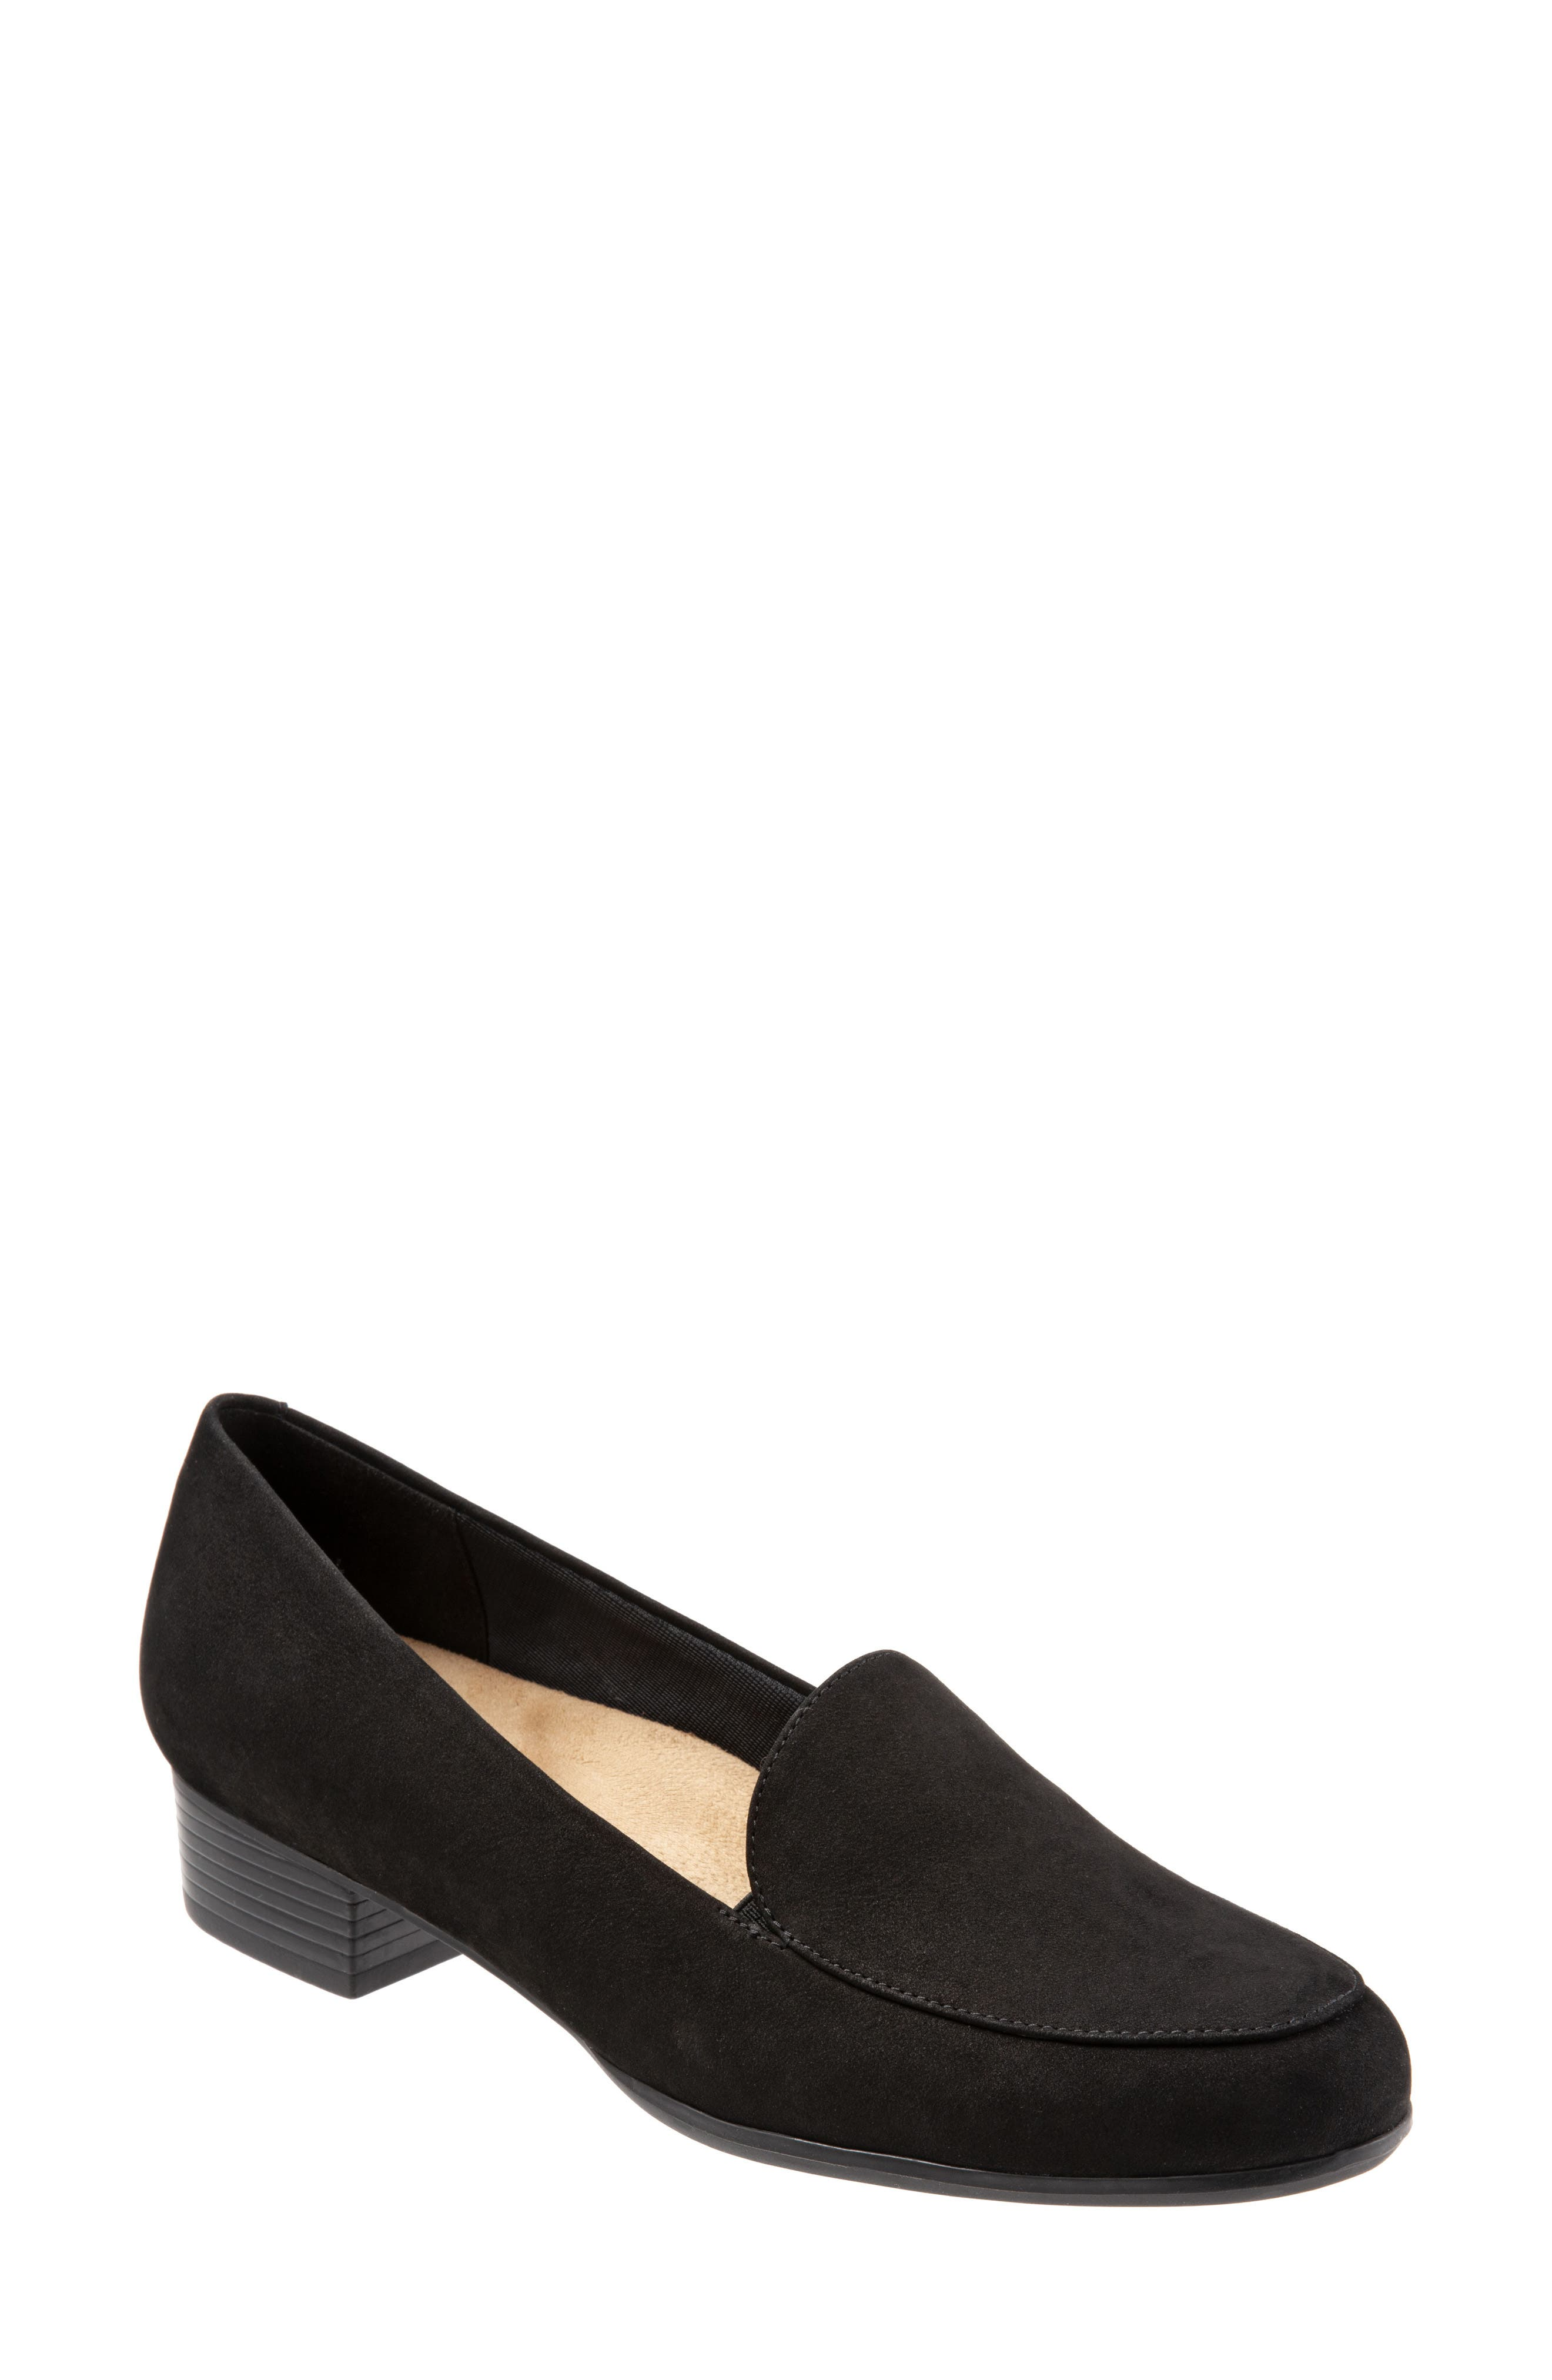 TROTTERS,                             Monarch Loafer,                             Main thumbnail 1, color,                             BLACK/ BLACK LEATHER